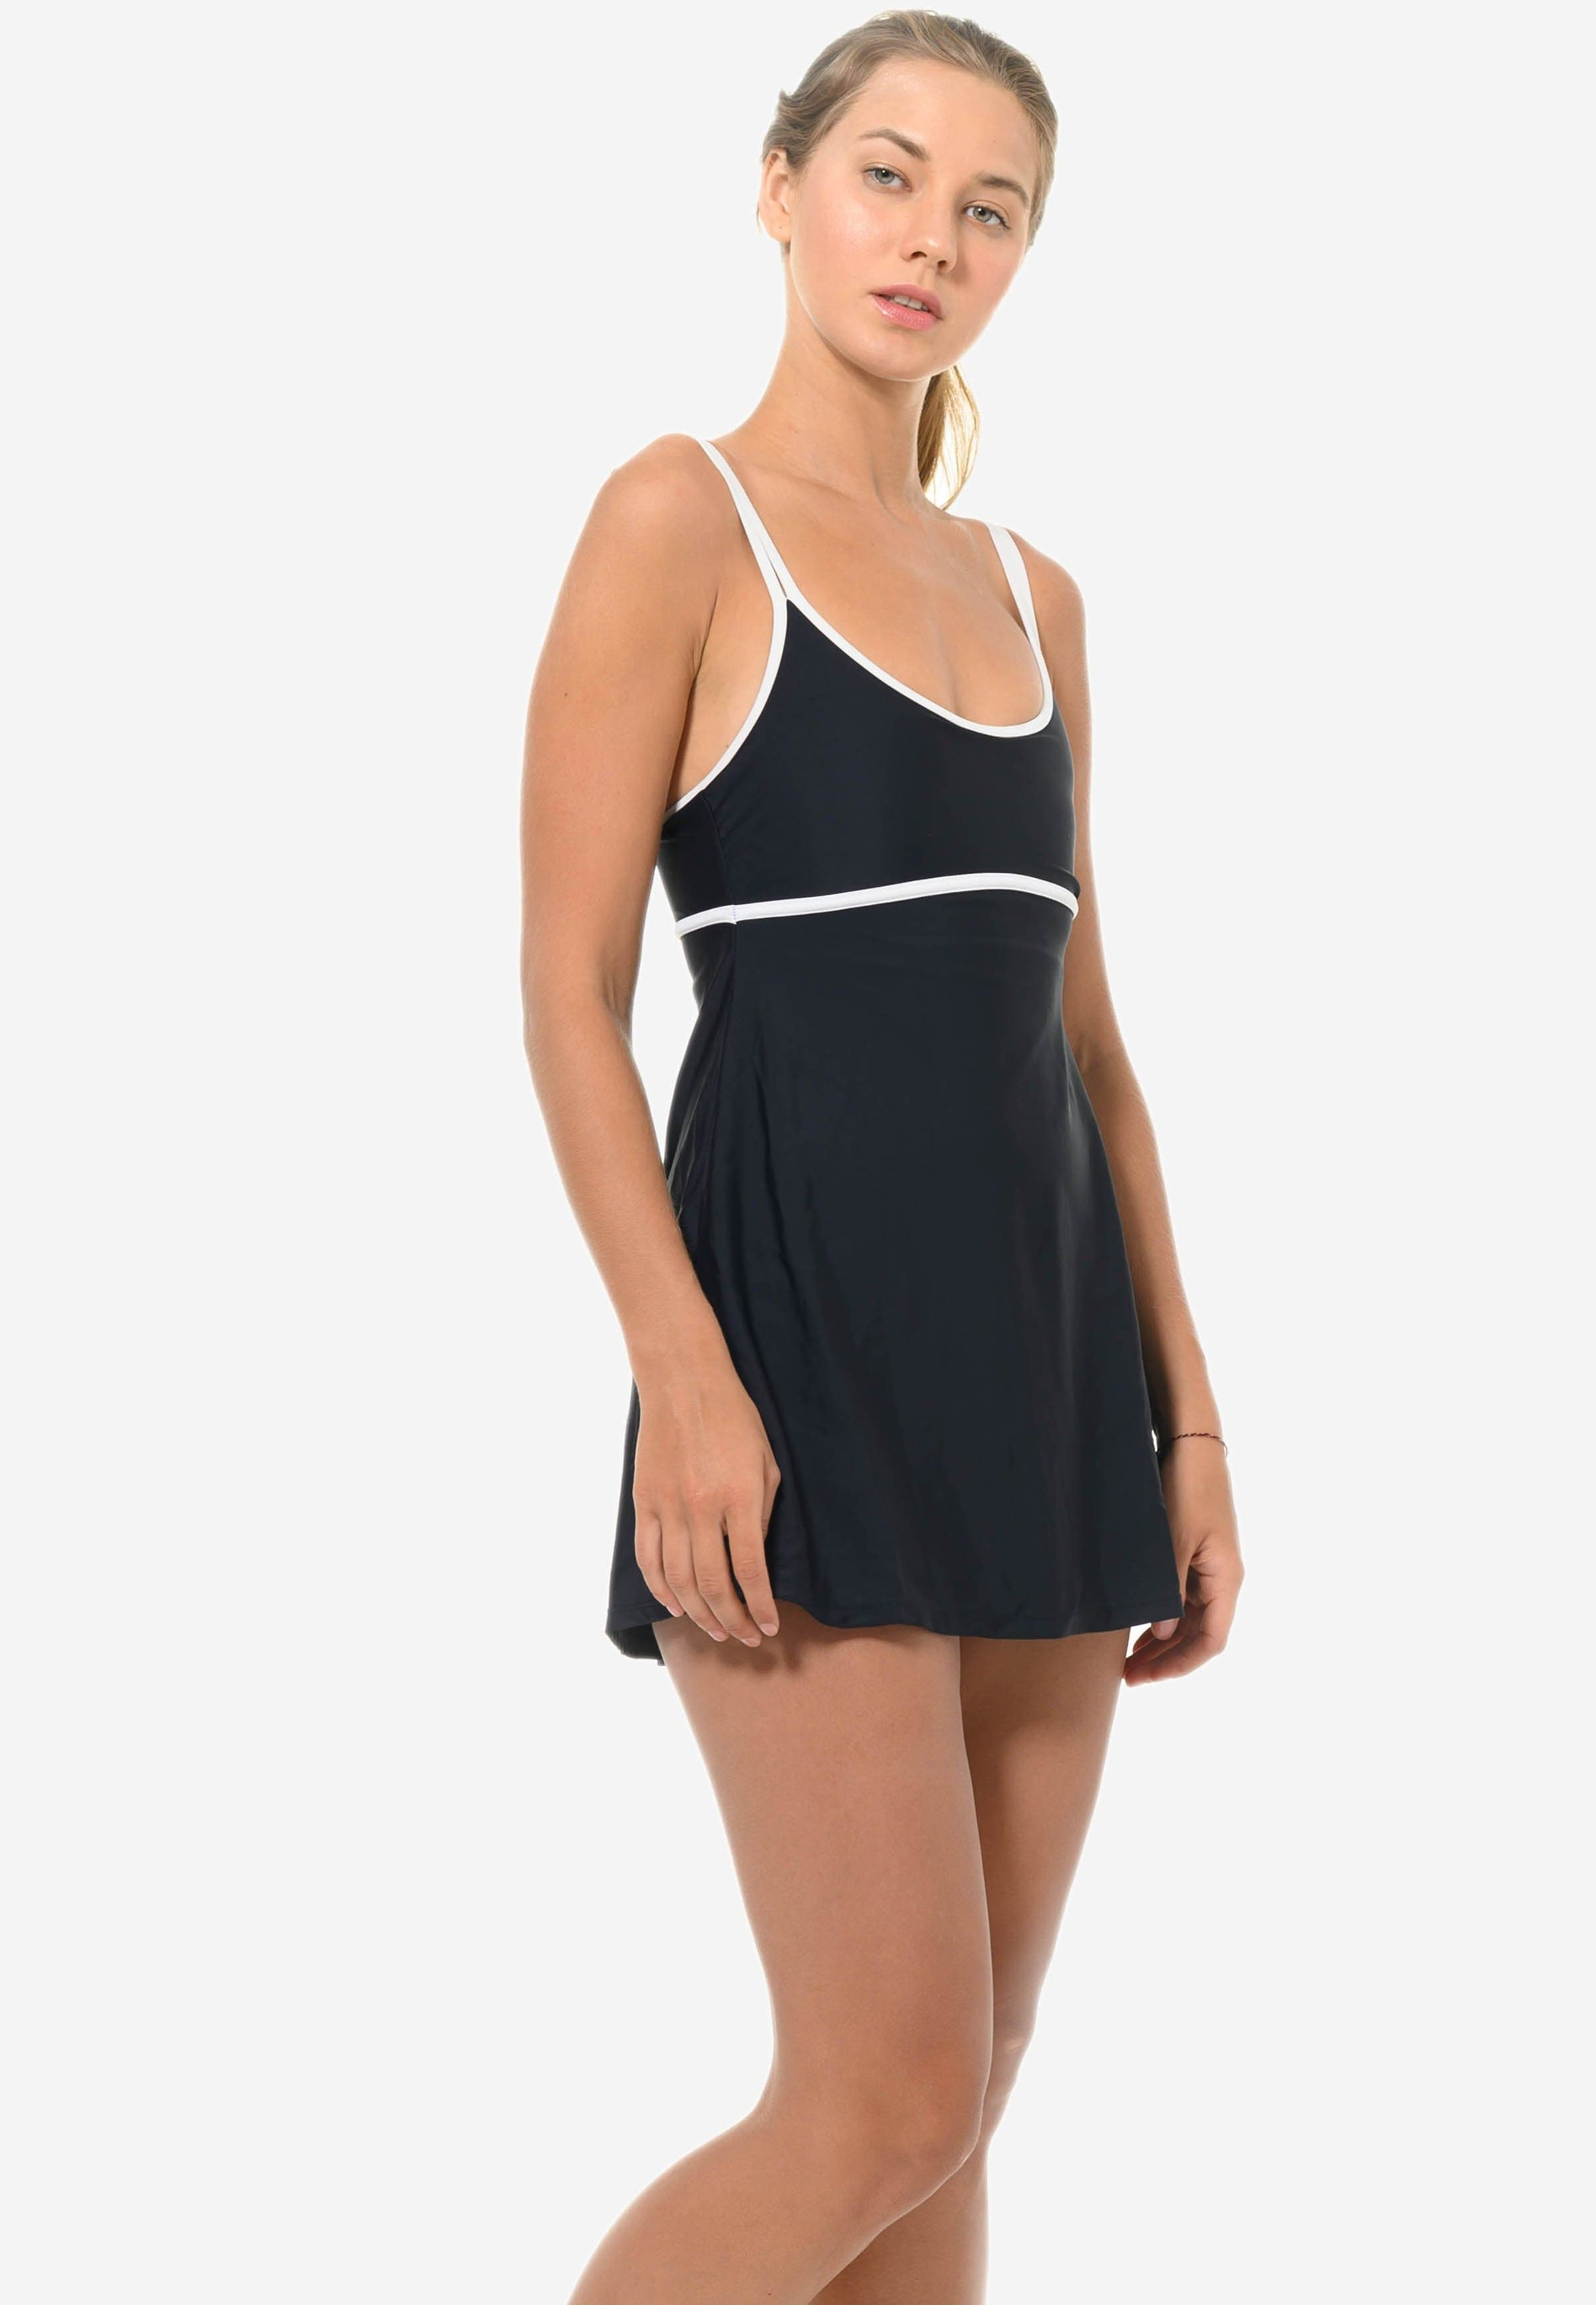 One-piece Colourblock Swimdress in Black/ White (S - L)